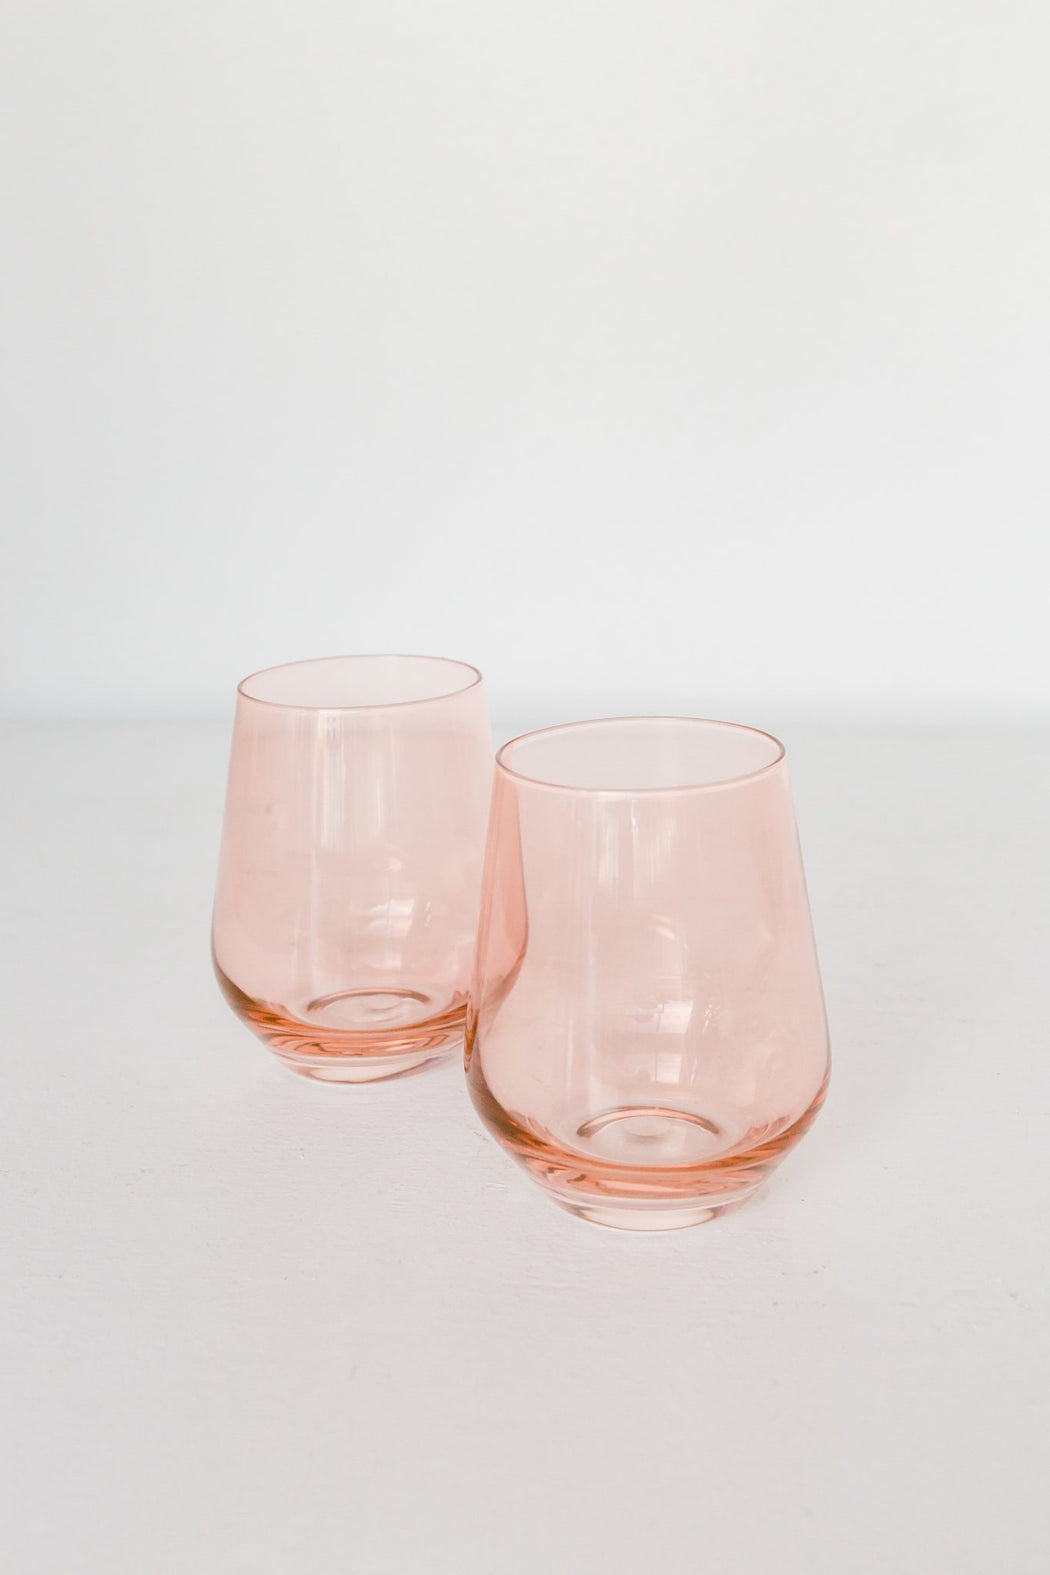 Stemless Wine Glasses in Blush Pink